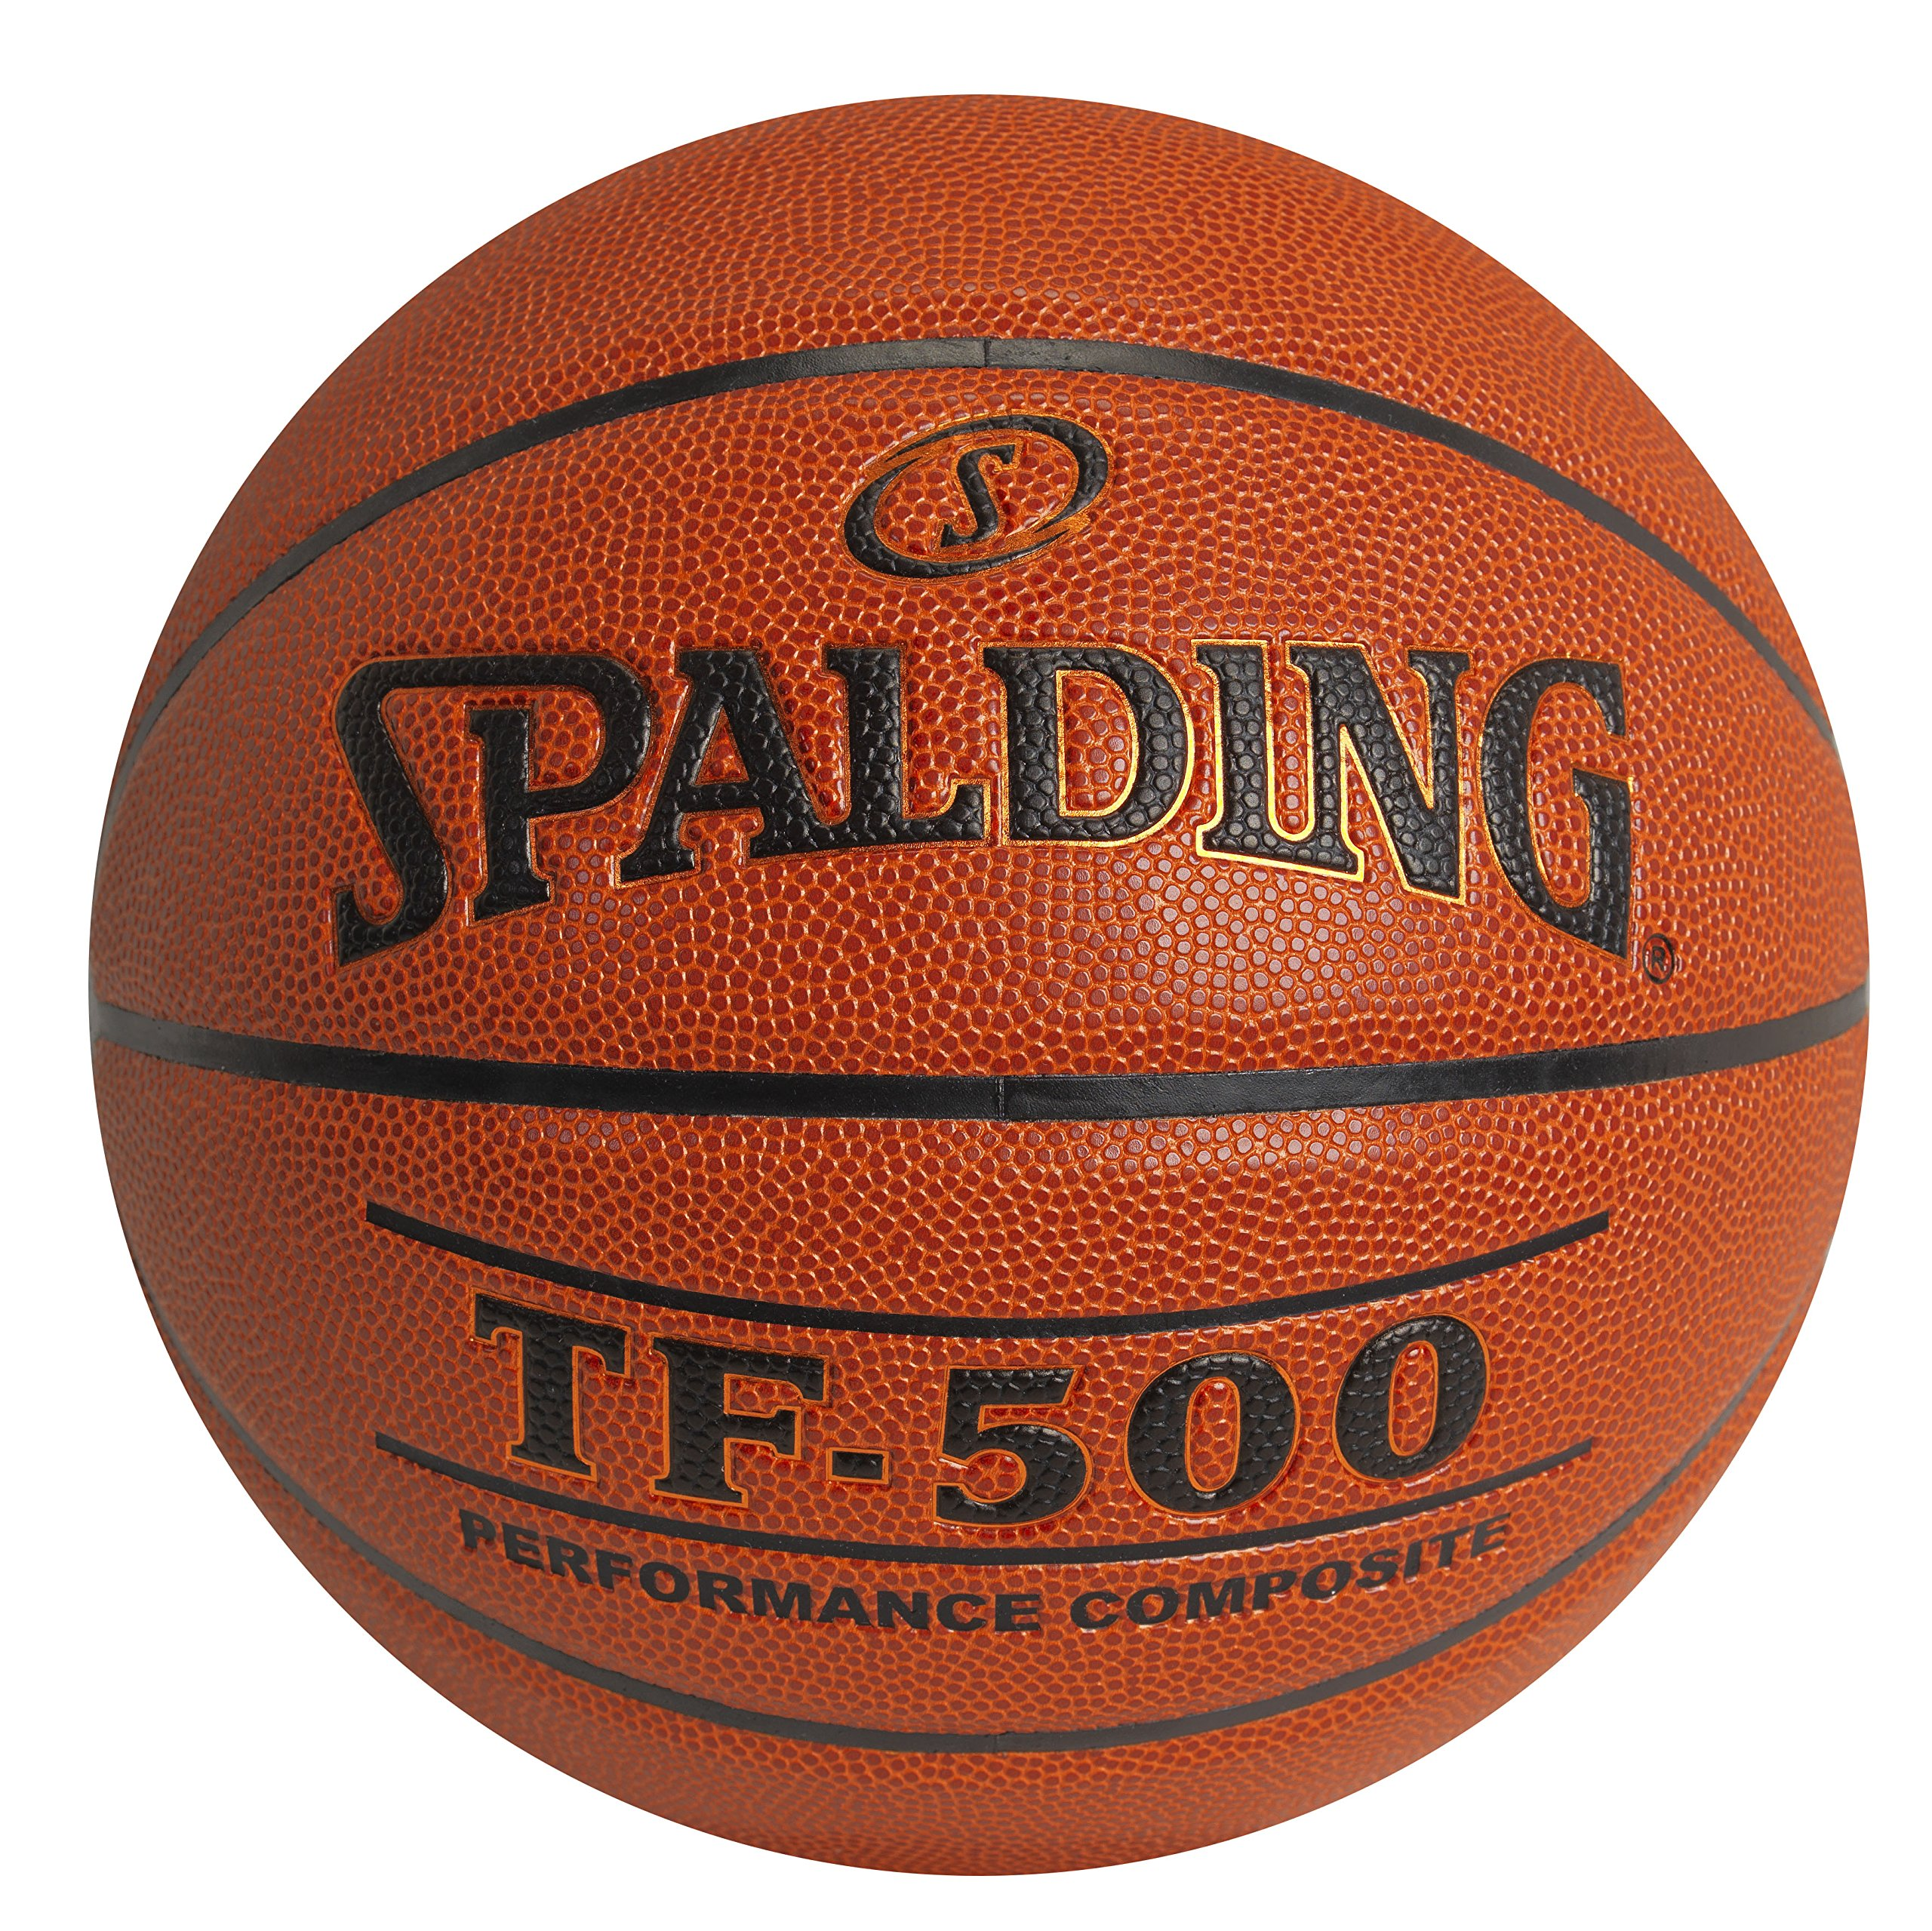 Spalding Men's TF-500 Composite Basketball (29.5'')